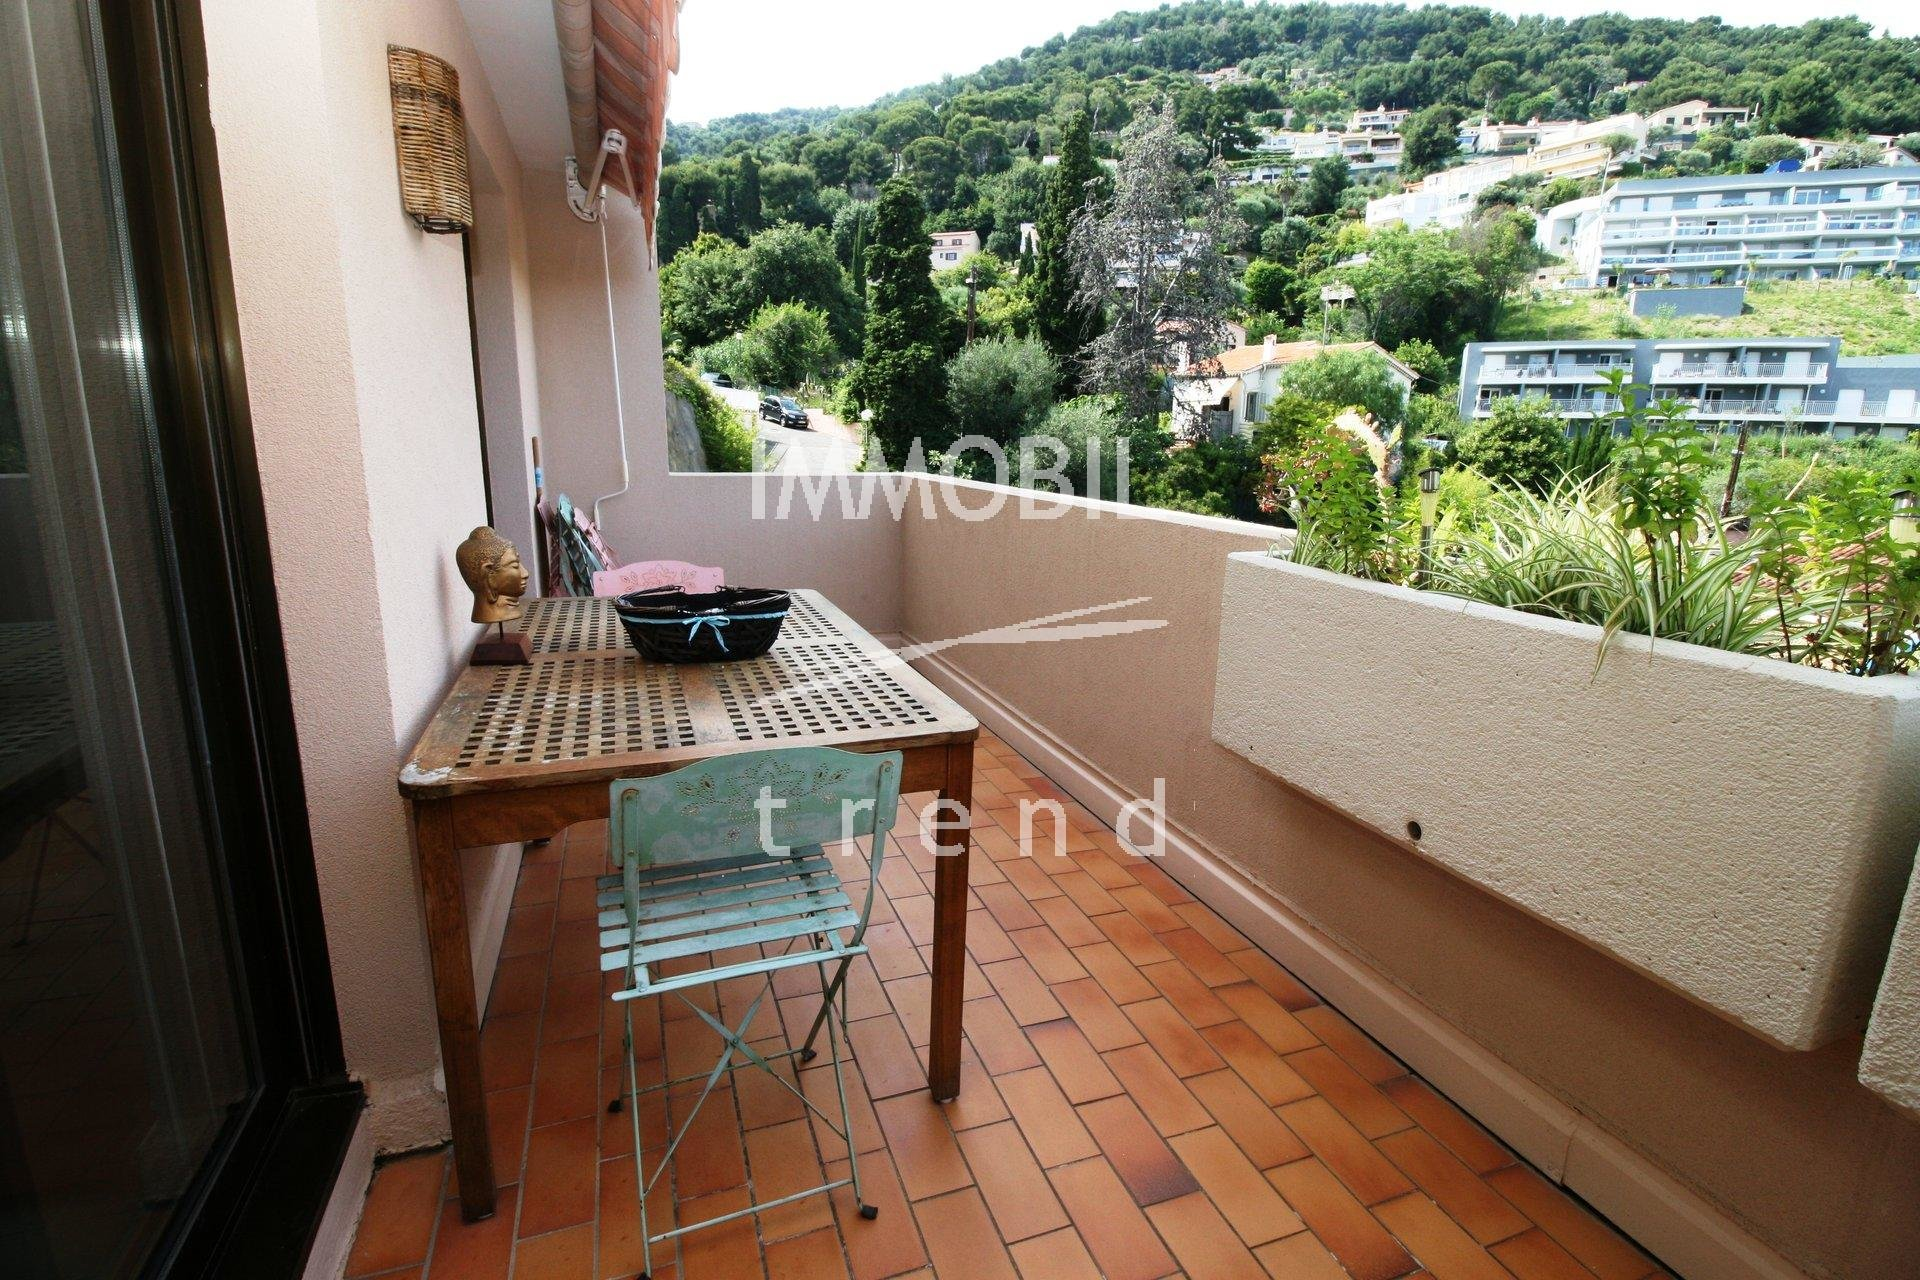 EXCLUSIVITE ROQUEBRUNE CAP MARTIN 4 PIECES 103 m2, TERRASSES, GARAGE ET PARKING